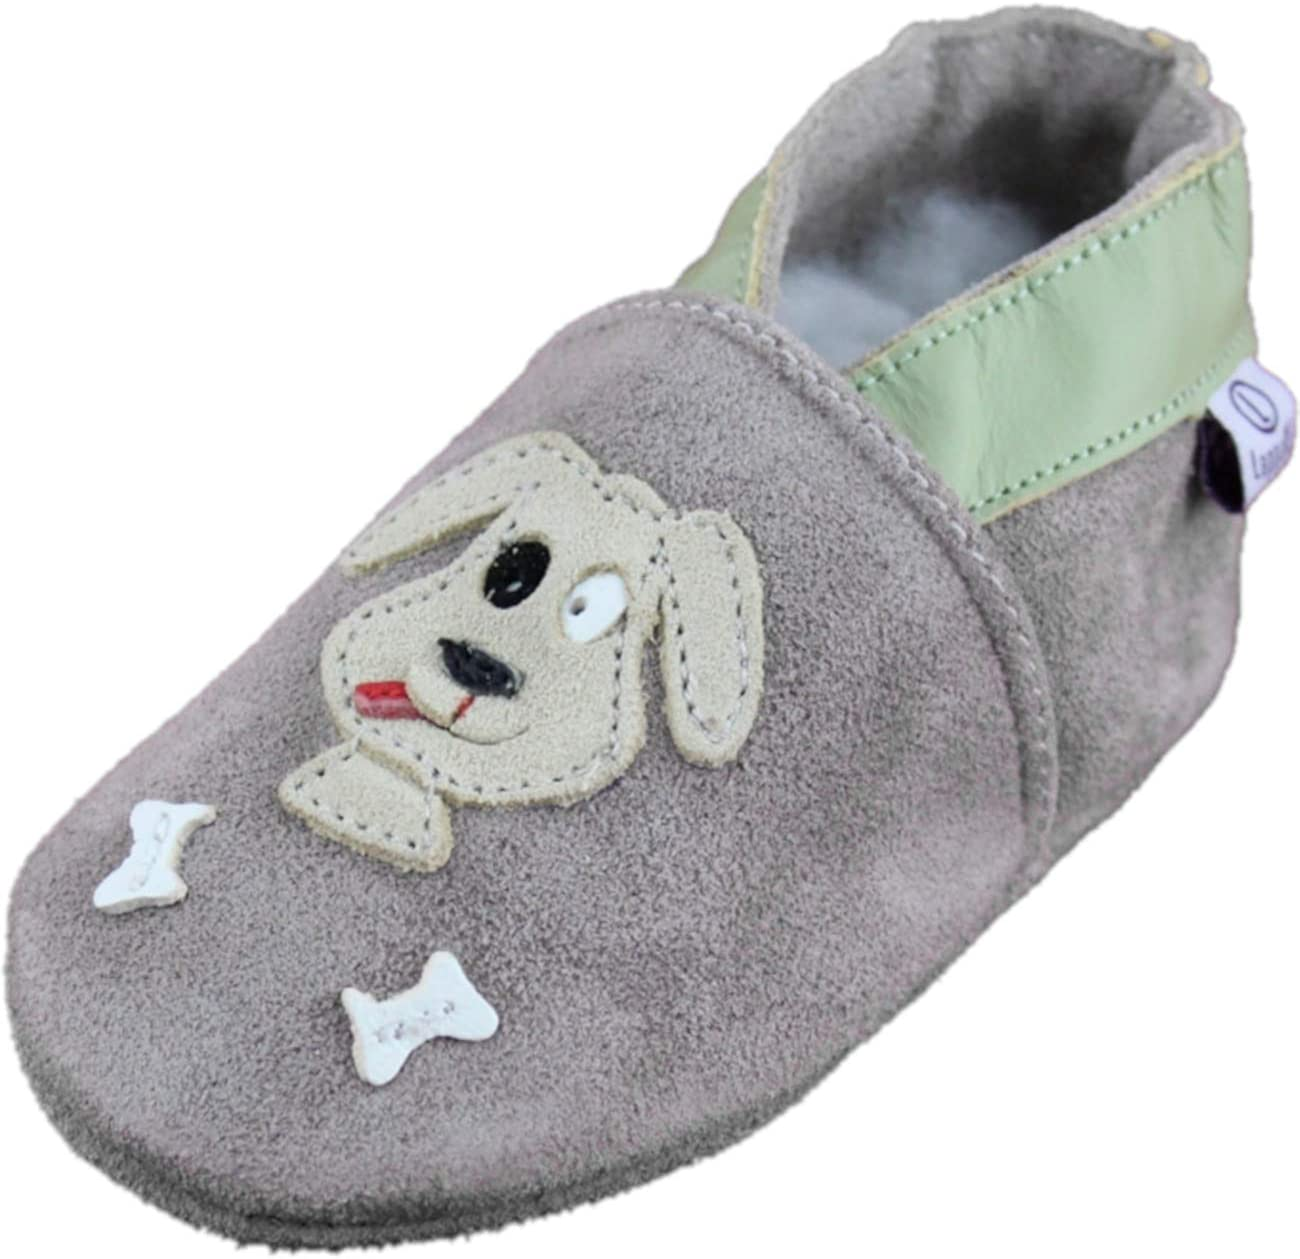 Lappade Leather Slippers Nursery Shoes